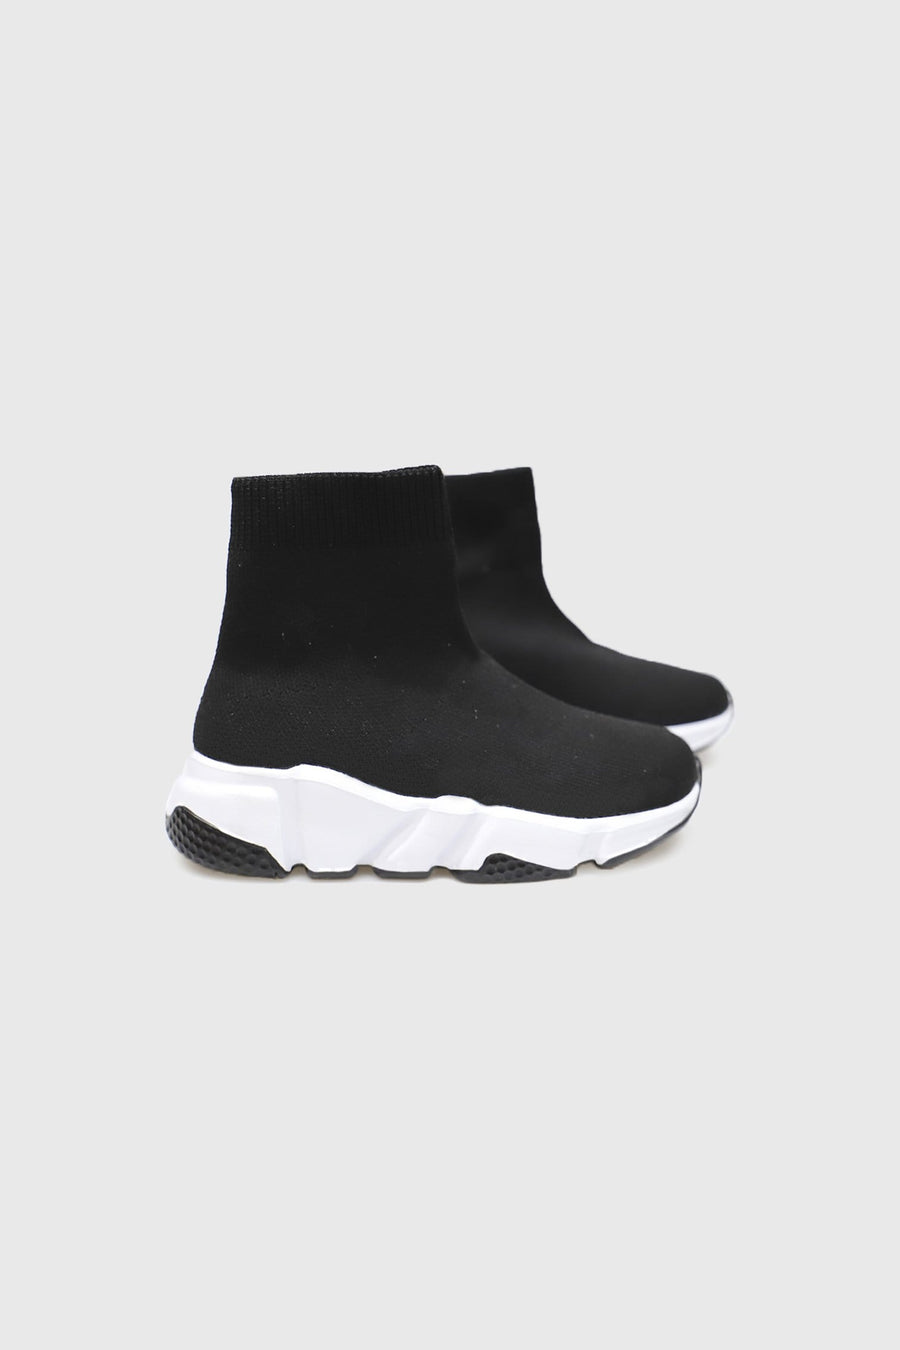 Ava Mid Ankle Sock Trainers in Black Knit